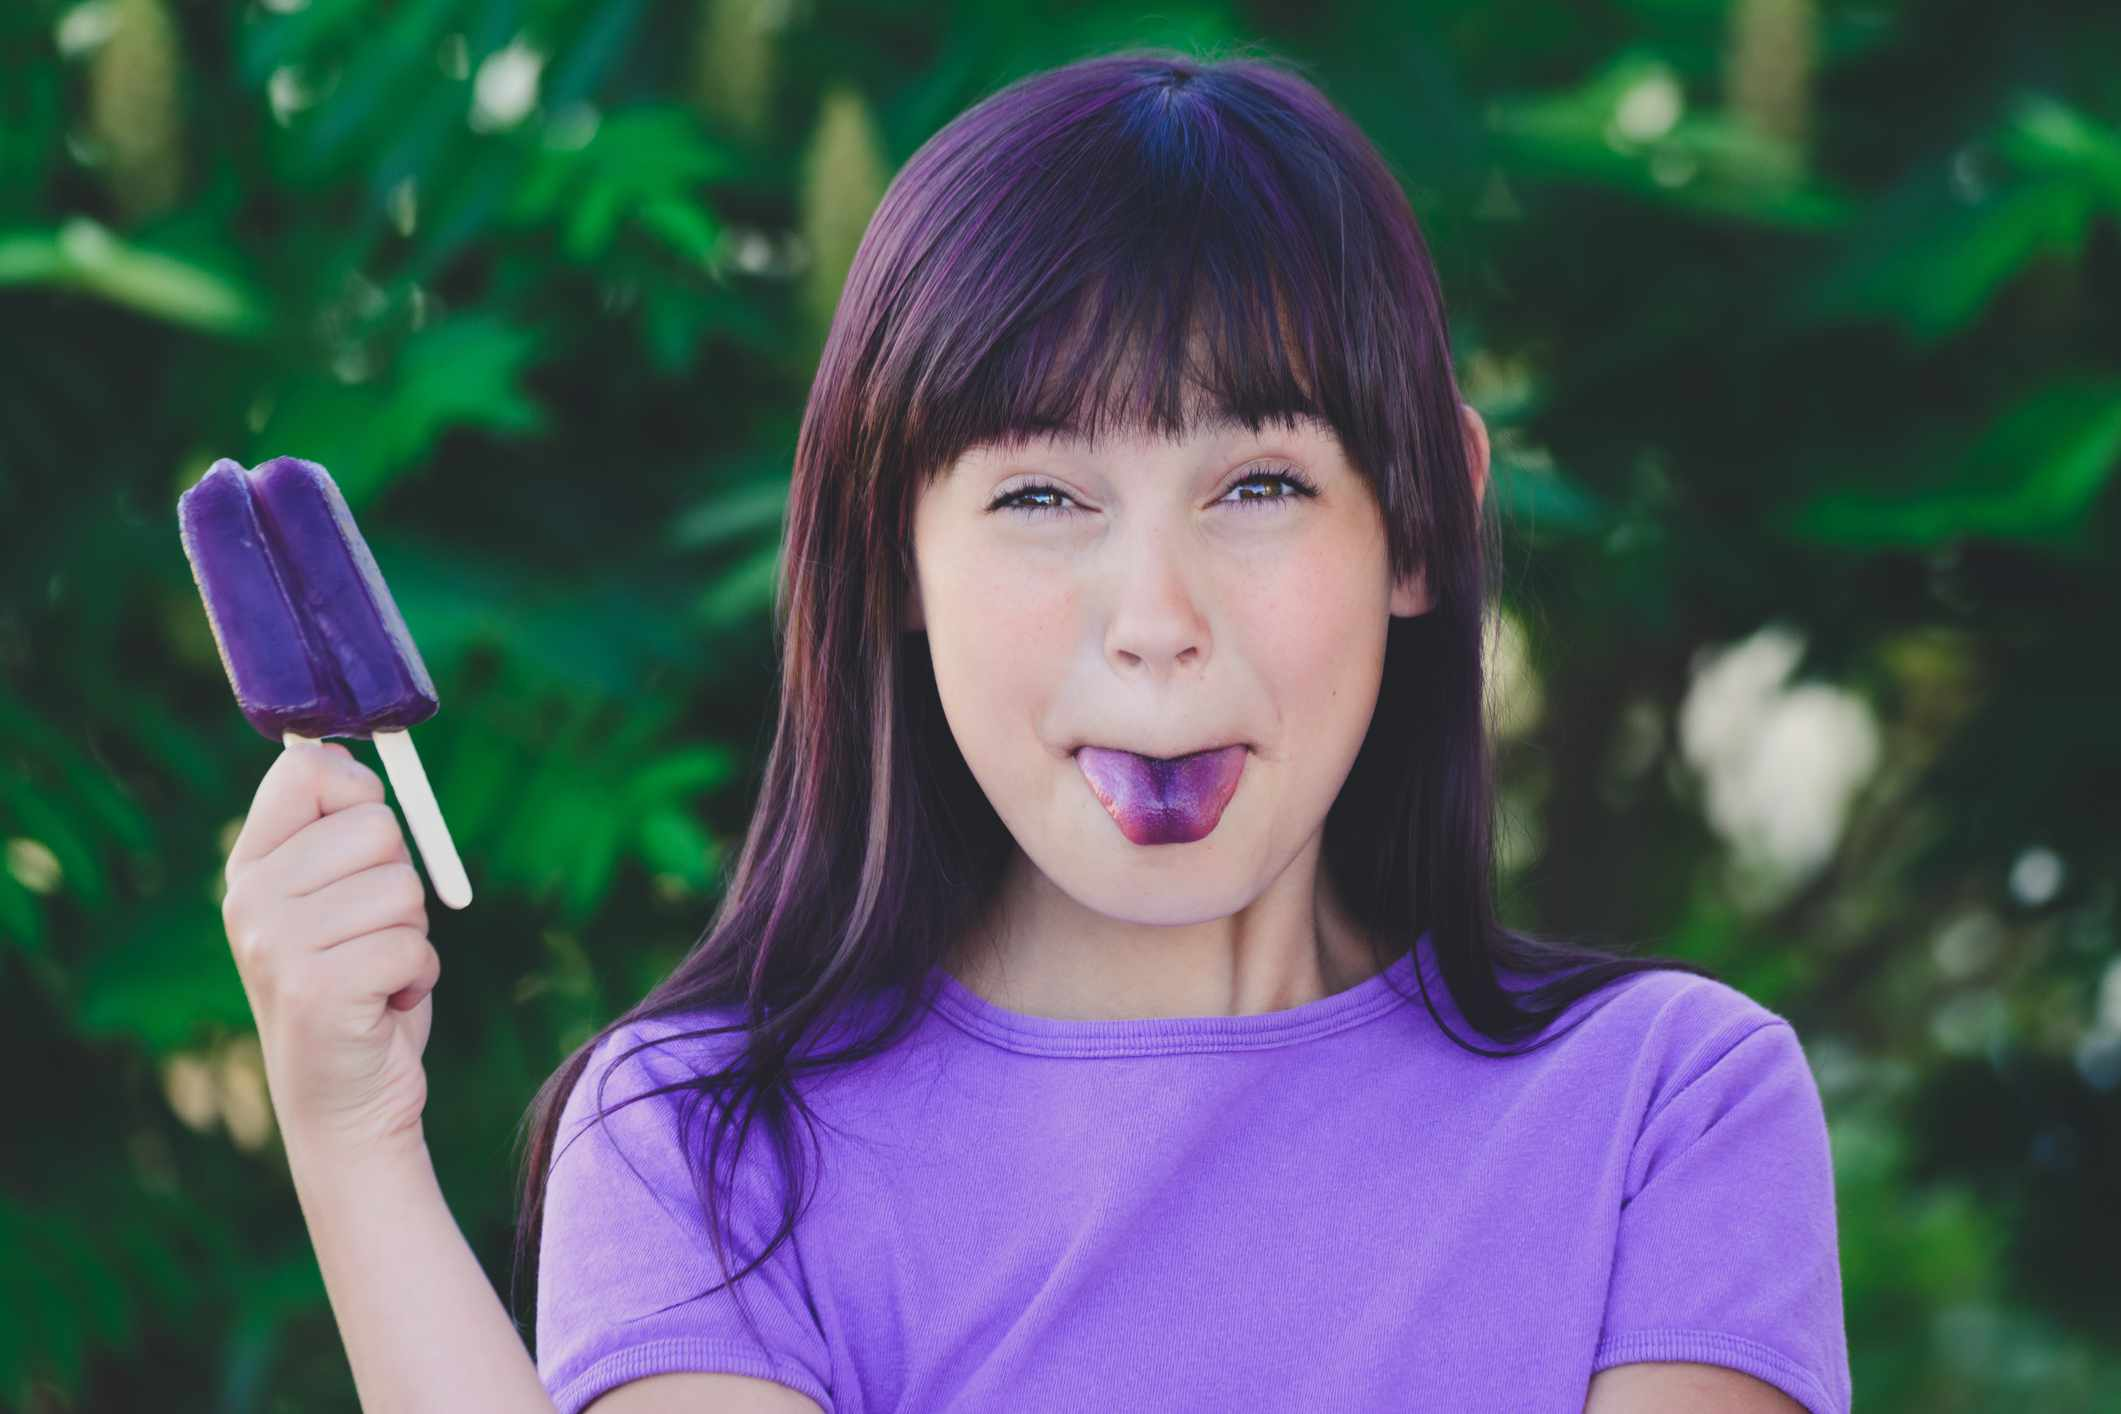 Young girl holding a purple popsicle with a purple tongue